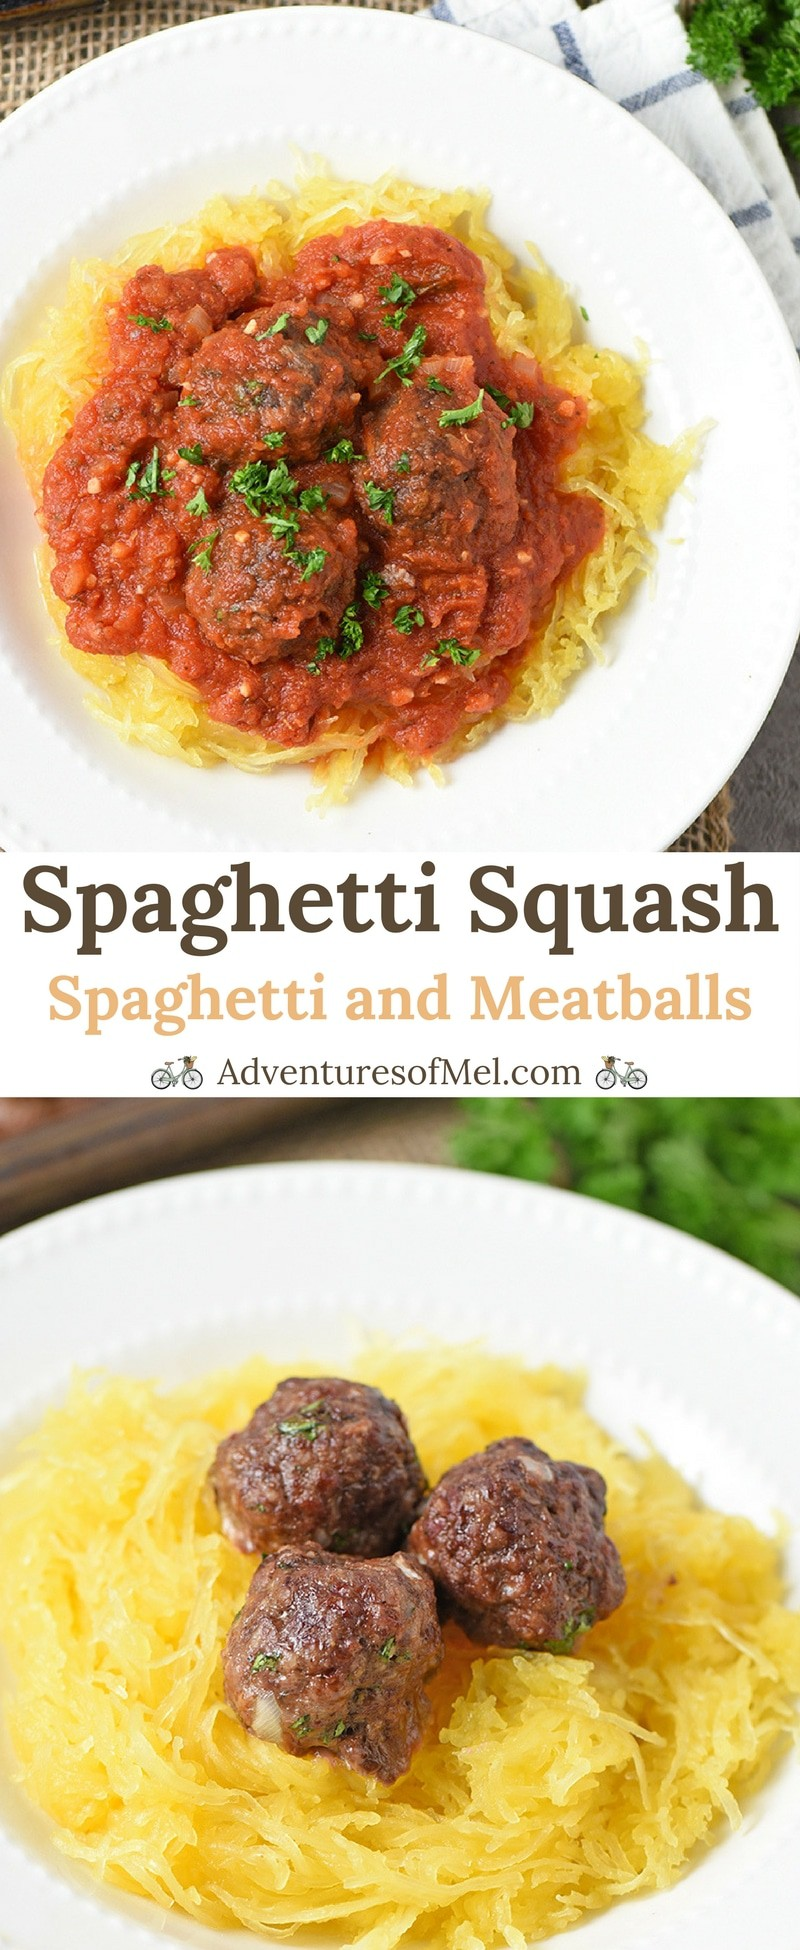 Spaghetti Squash and Meatballs Easy Recipe